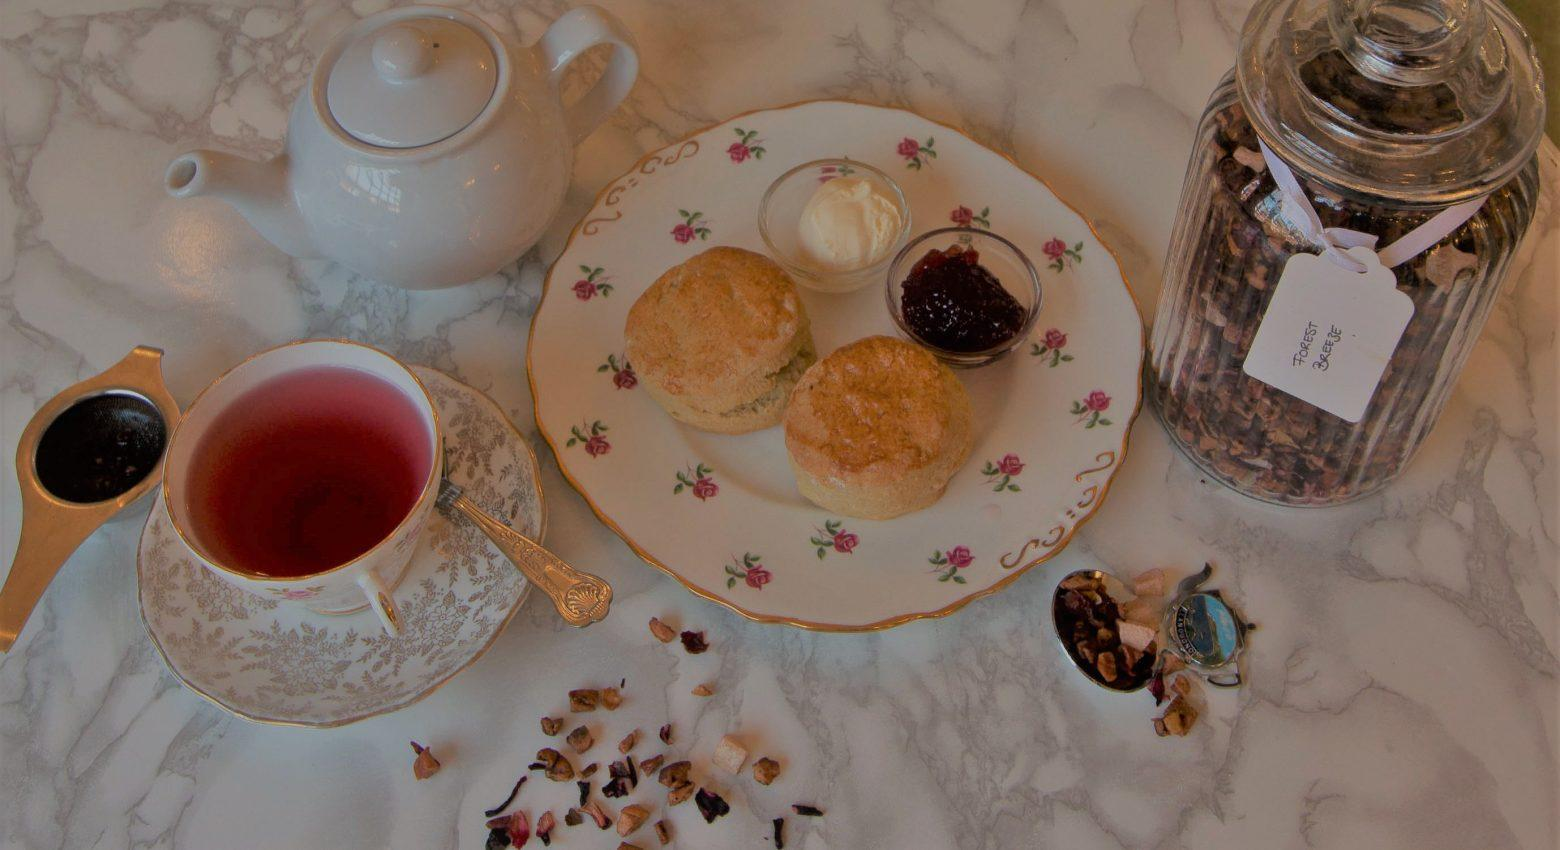 Cream tea with strawberry jam, clotted cream and loose leaf tea